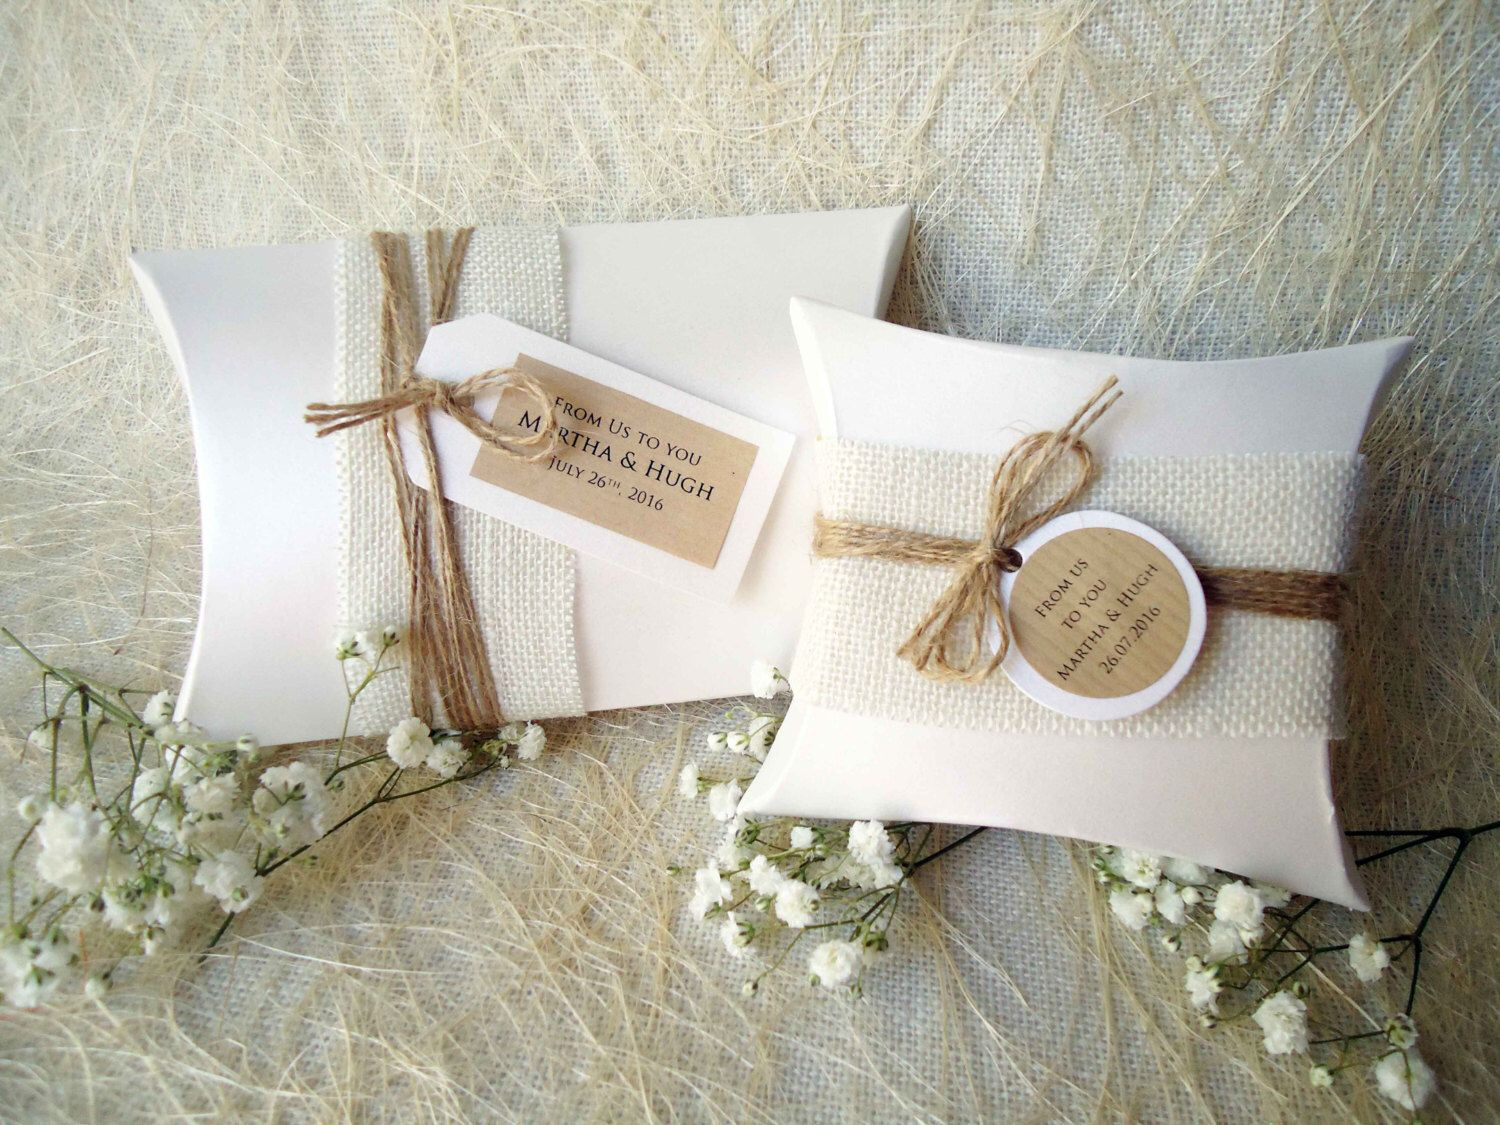 Wedding Favor Boxes Party Favor Boxes Pillow Boxes Burlap Box White